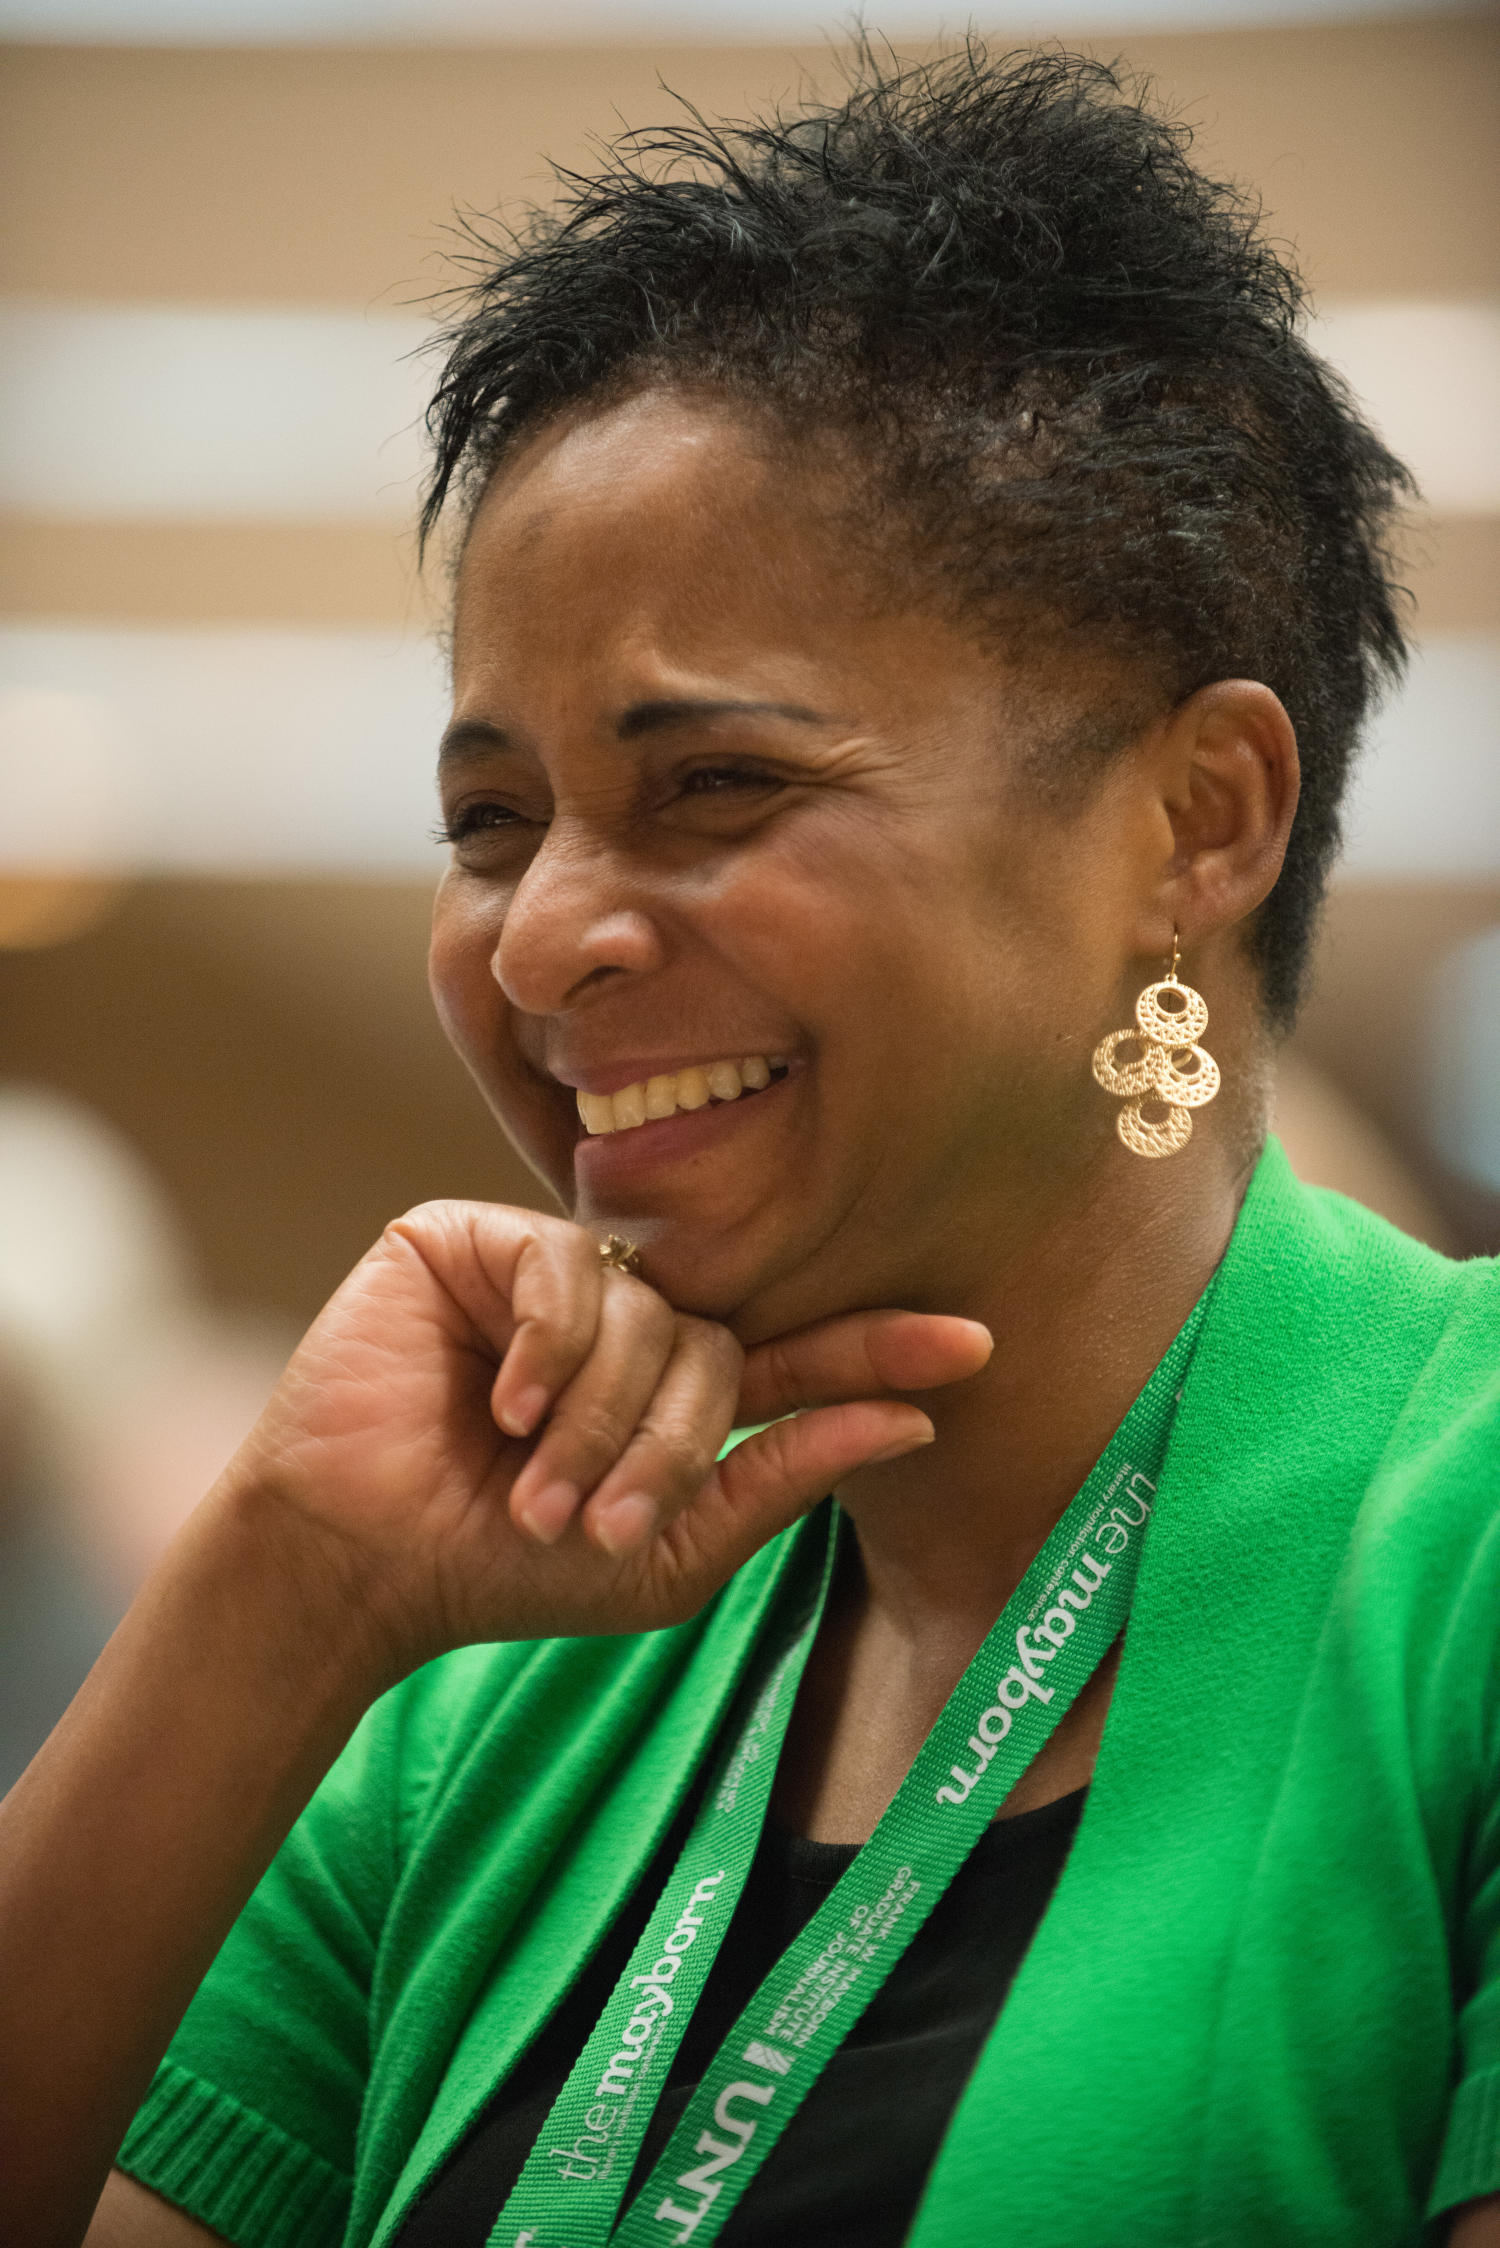 """[Dorothy Bland laughing at a panel], Photograph of Dorothy Bland, the Dean of the Mayborn School of Journalism, laughing at something said during the """"Sensitivity - The Right Way to Cover Survivors"""" panel. The panel was held as a part of the Mayborn Literary Nonfiction Conference at the Hilton DFW Lakes Executive Conference Center, Grapevine, TX.,"""